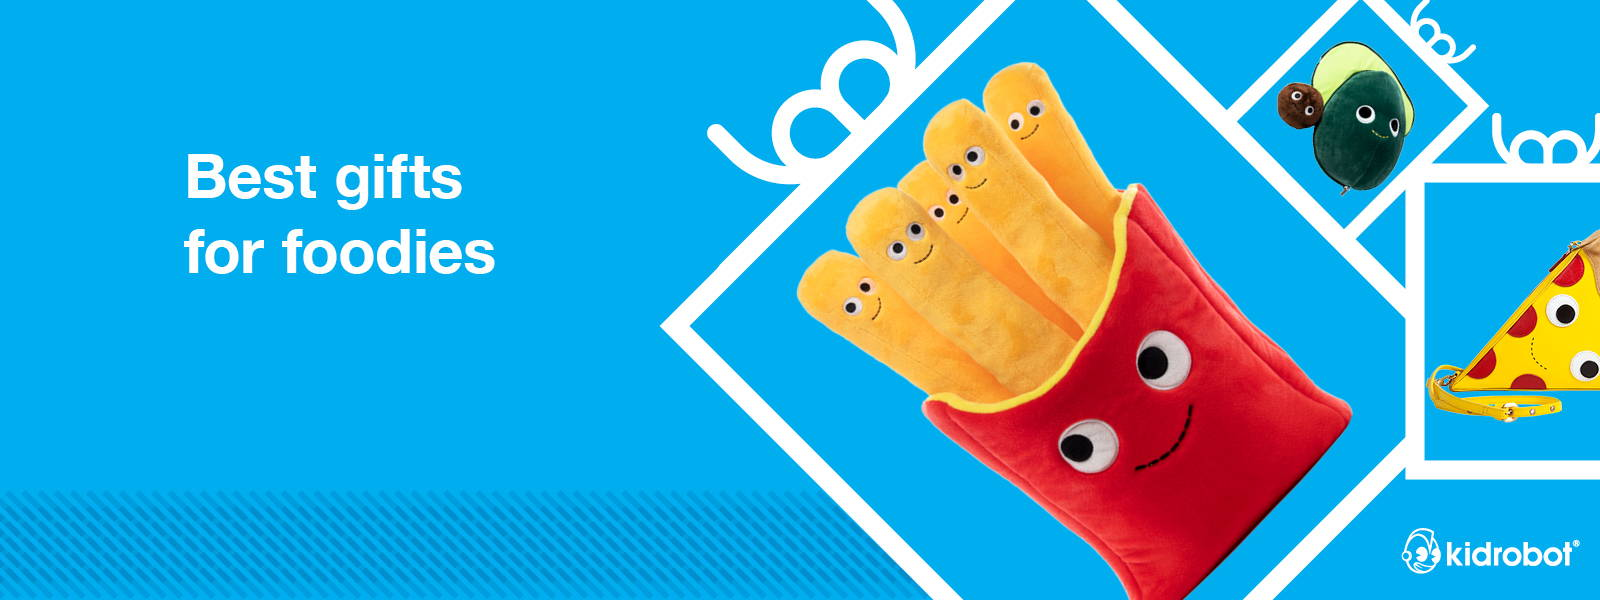 Kidrobot Best Gifts for Foodies